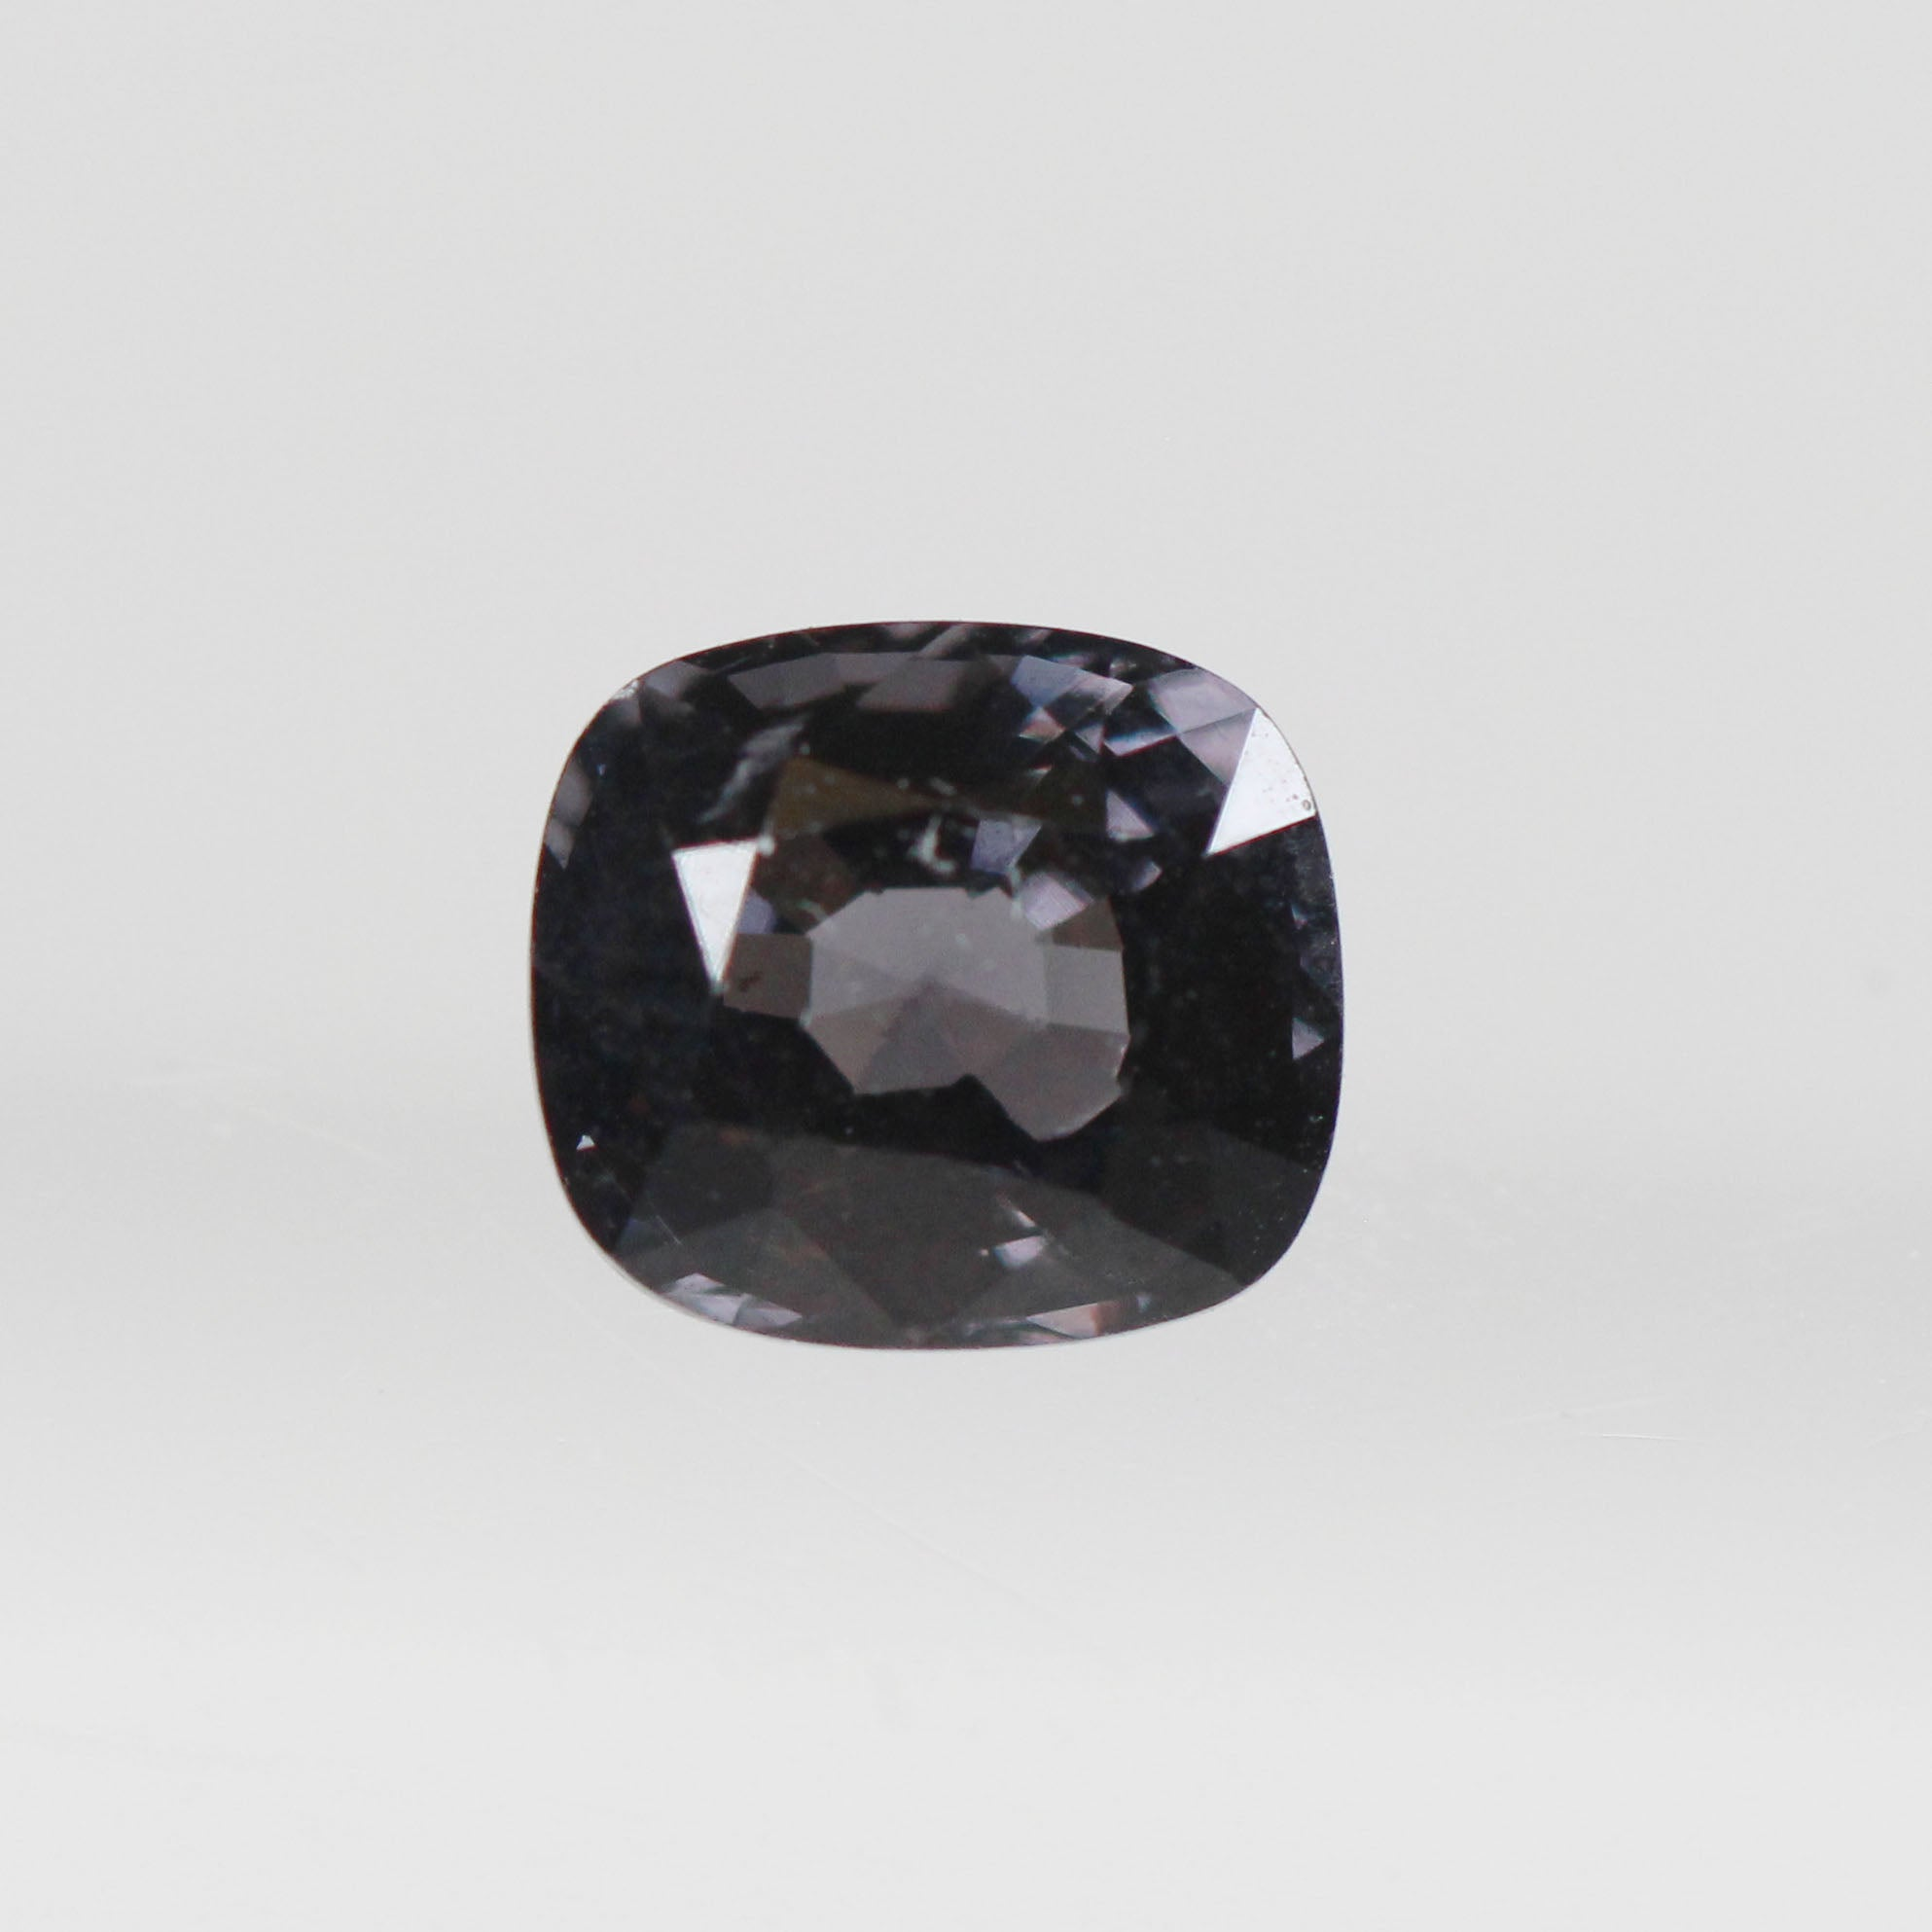 1.41 Carat Cushion Spinel for Custom Work - Inventory Code CBSP141 - Salt & Pepper Celestial Diamond Engagement Rings and Wedding Bands  by Midwinter Co.